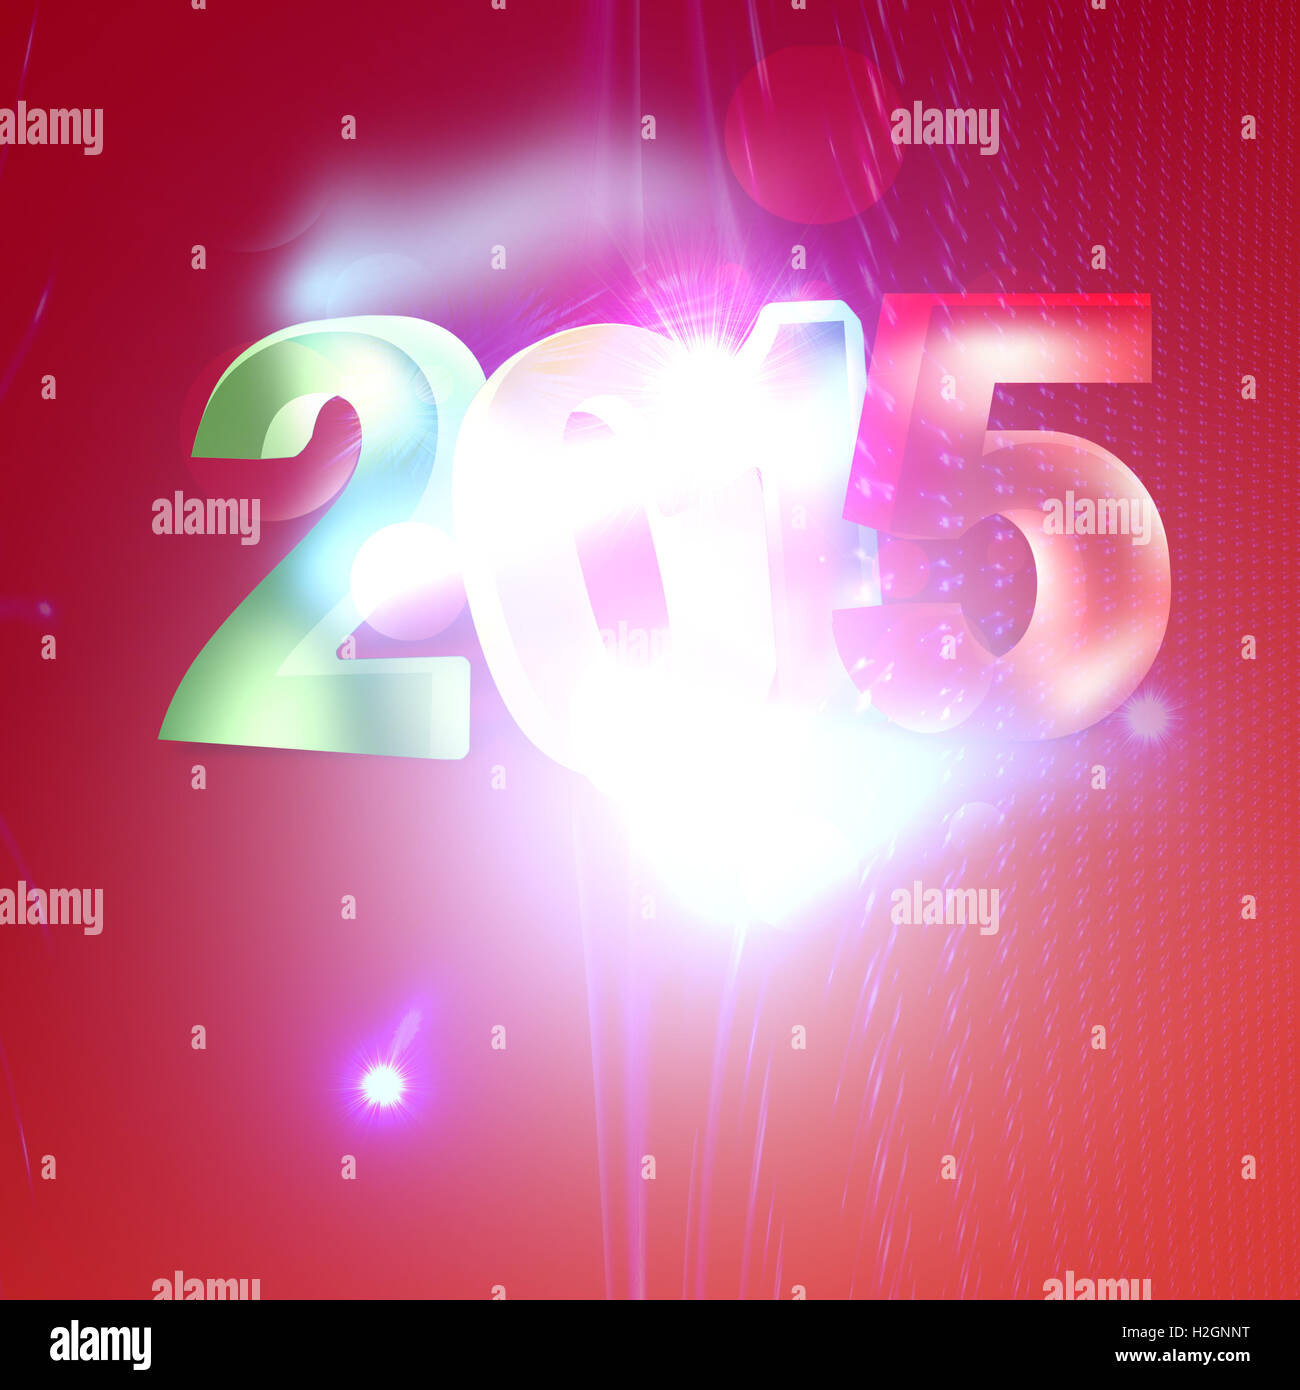 Christmas 2015 image - Stock Image